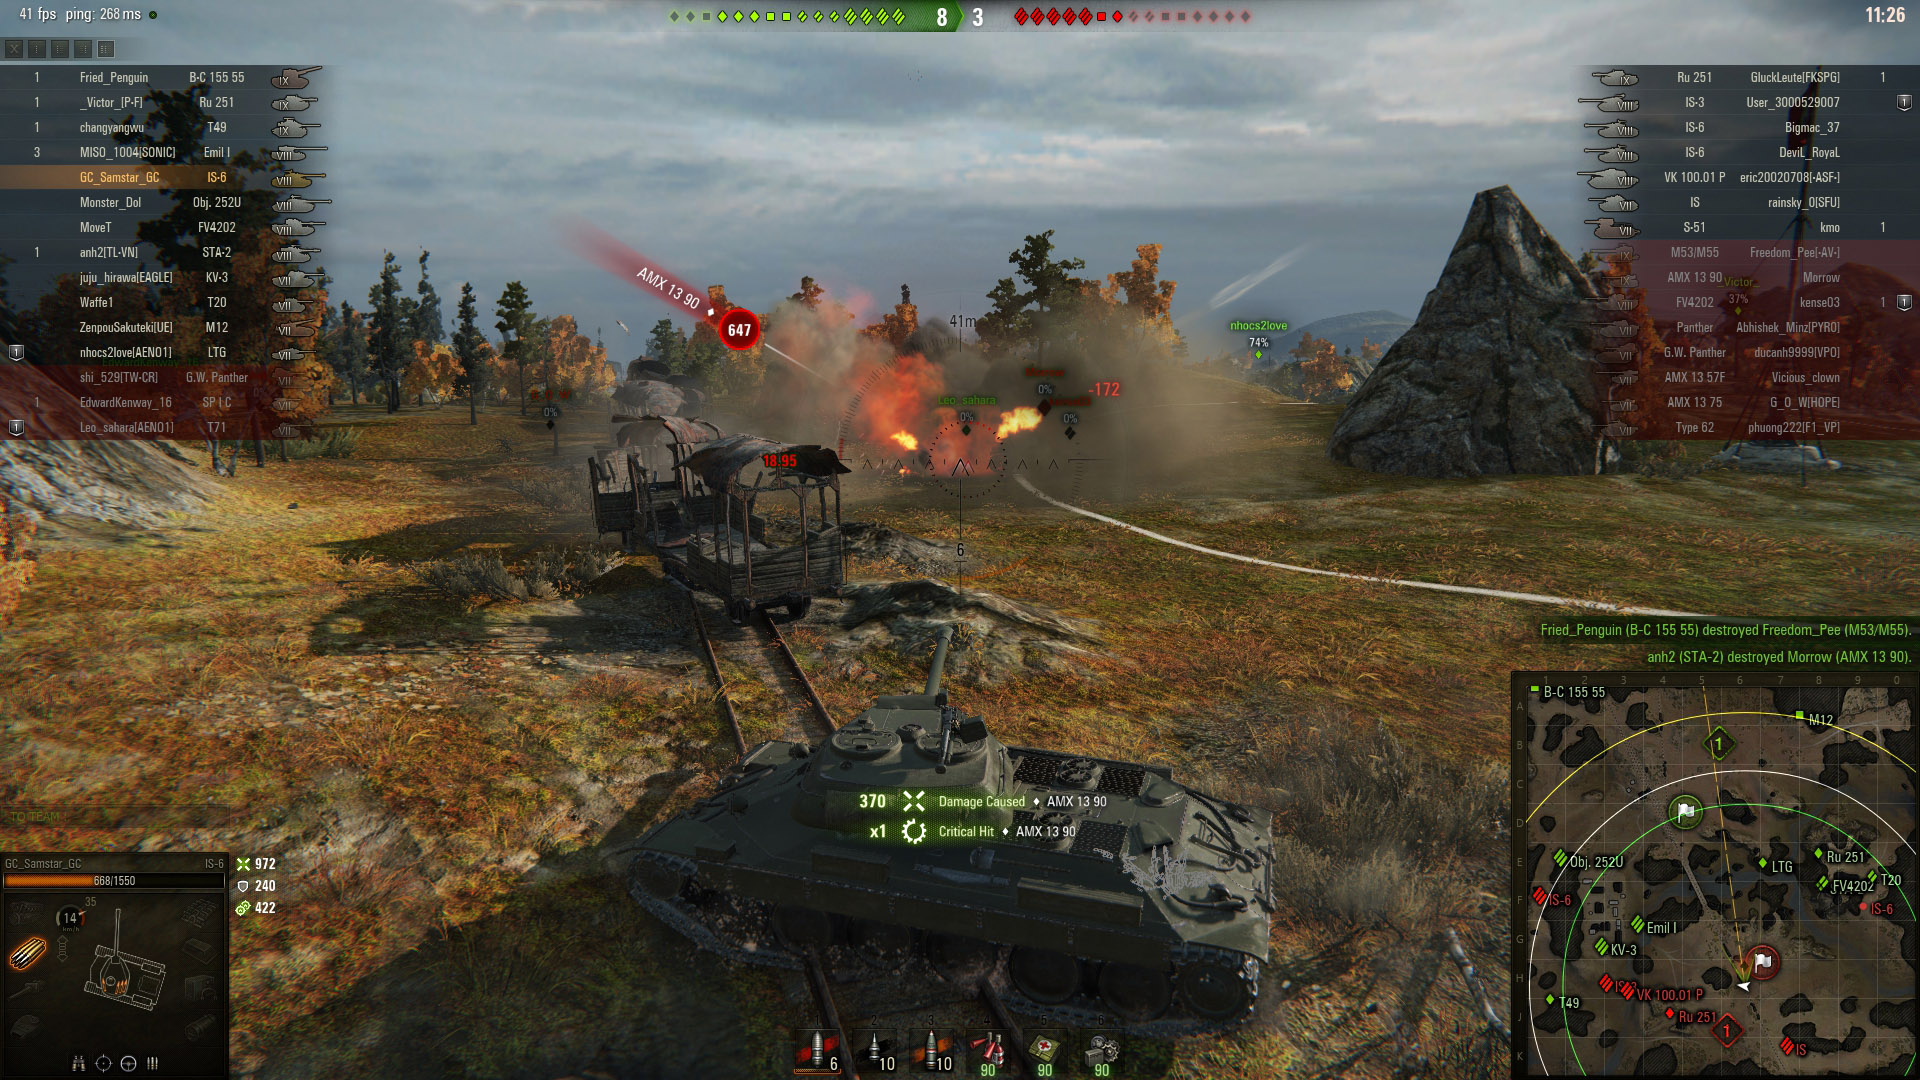 Try to use speed to get behind the IS-6 to better aim at its rear armor.